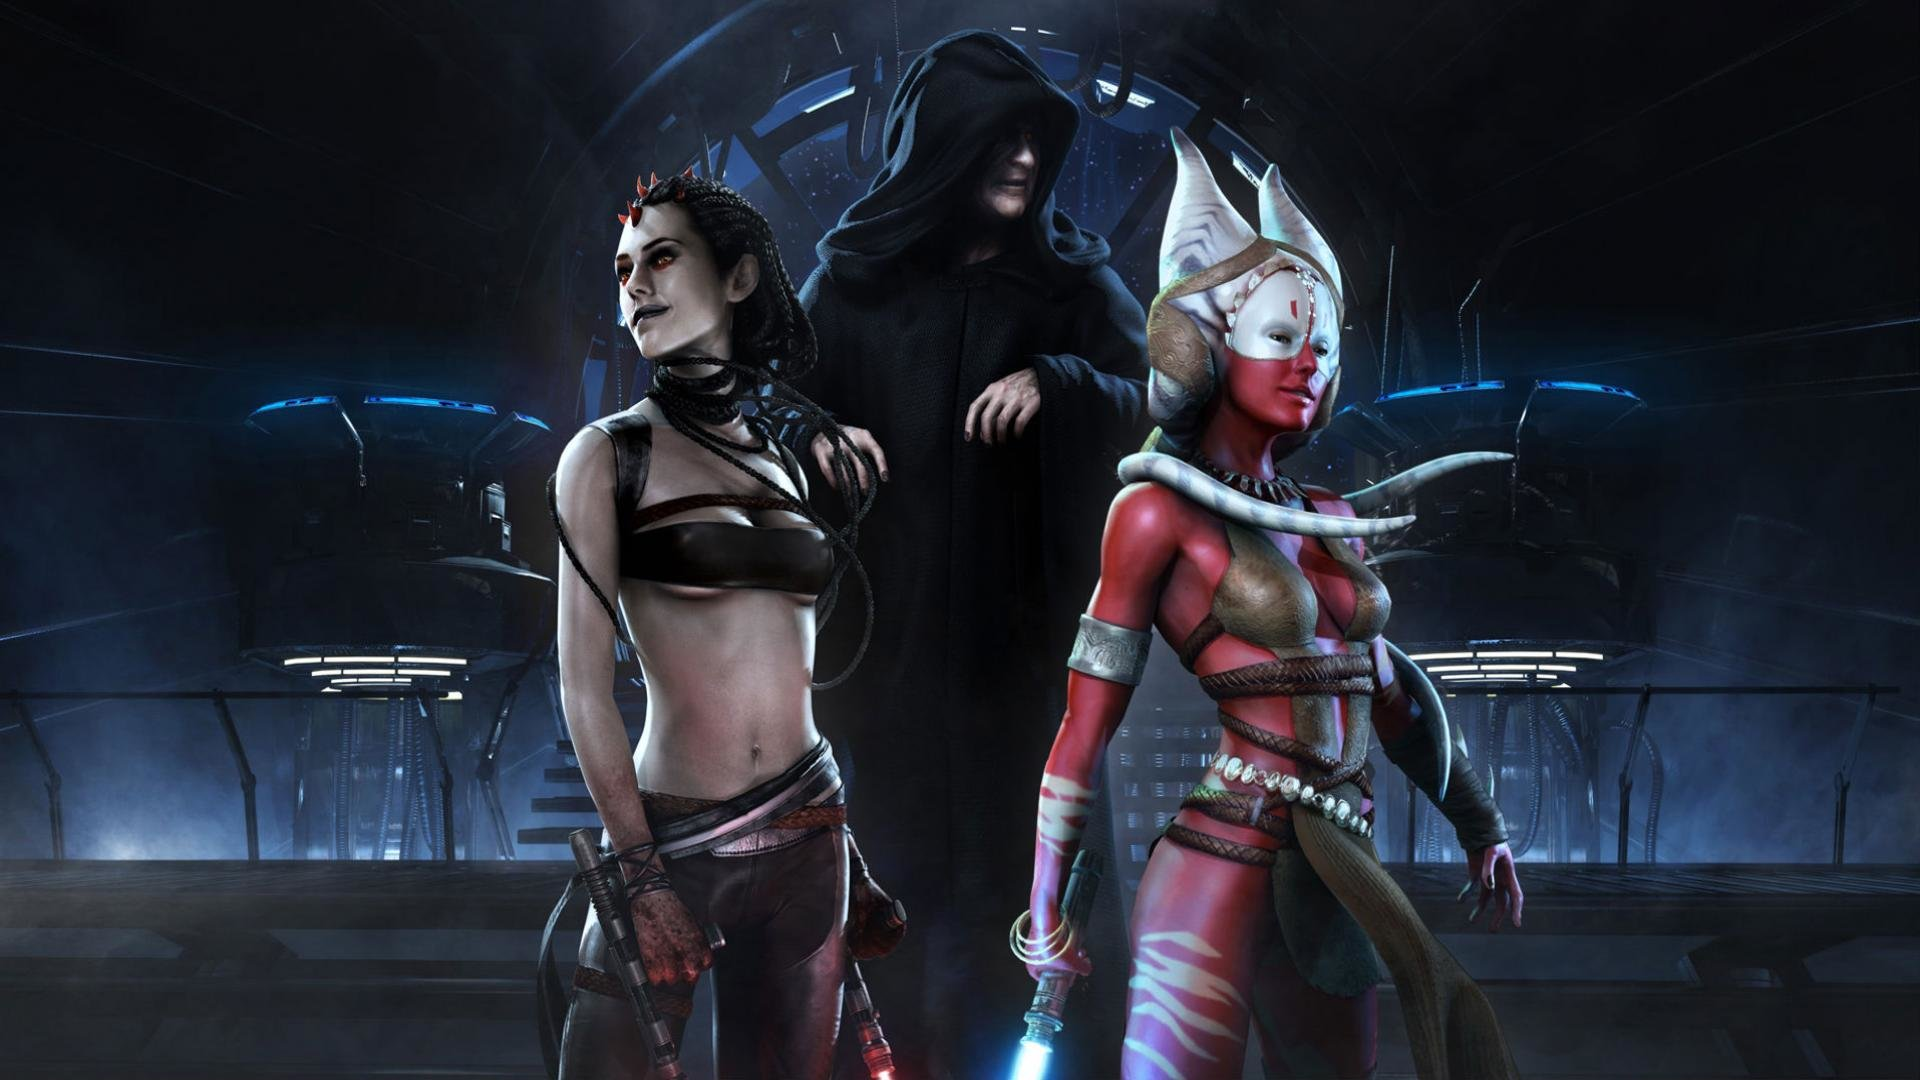 Star Wars The Old Republic Wallpapers 1920x1080 Full Hd 1080p Desktop Backgrounds